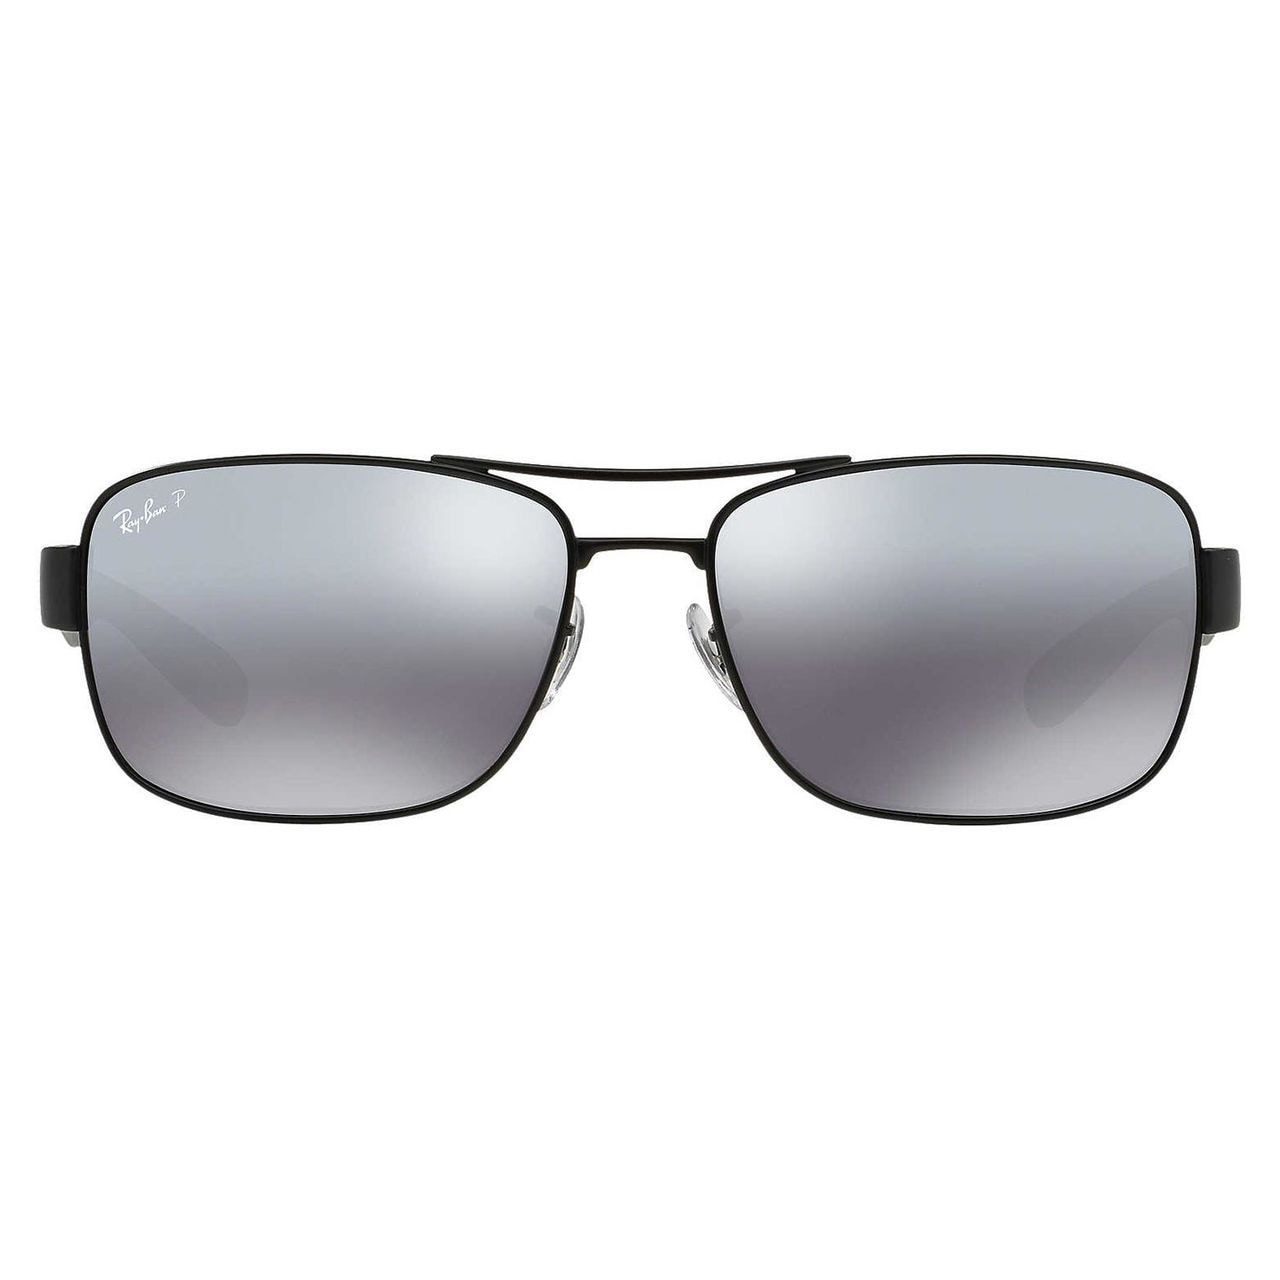 890265aec0 Shop Ray-Ban Men s RB3522 Black Metal Square Polarized Sunglasses - Free  Shipping Today - Overstock.com - 10482525